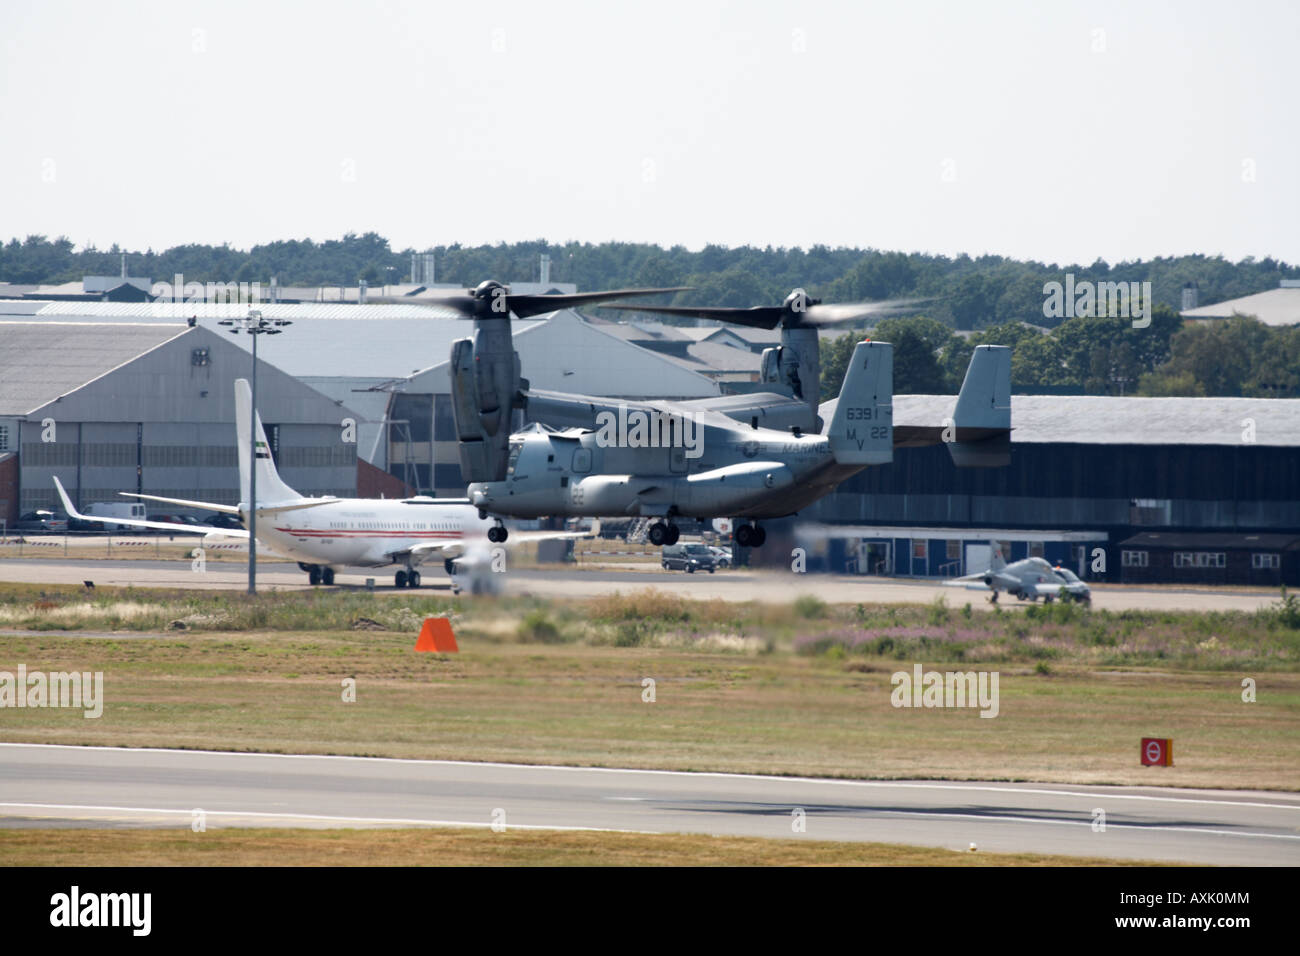 Interesting V Stock Photos Images Alamy 22 Osprey Engine Diagram Bell Boeing Aircraft Landing After Flying Display At Farnborough International Airshow July 2006